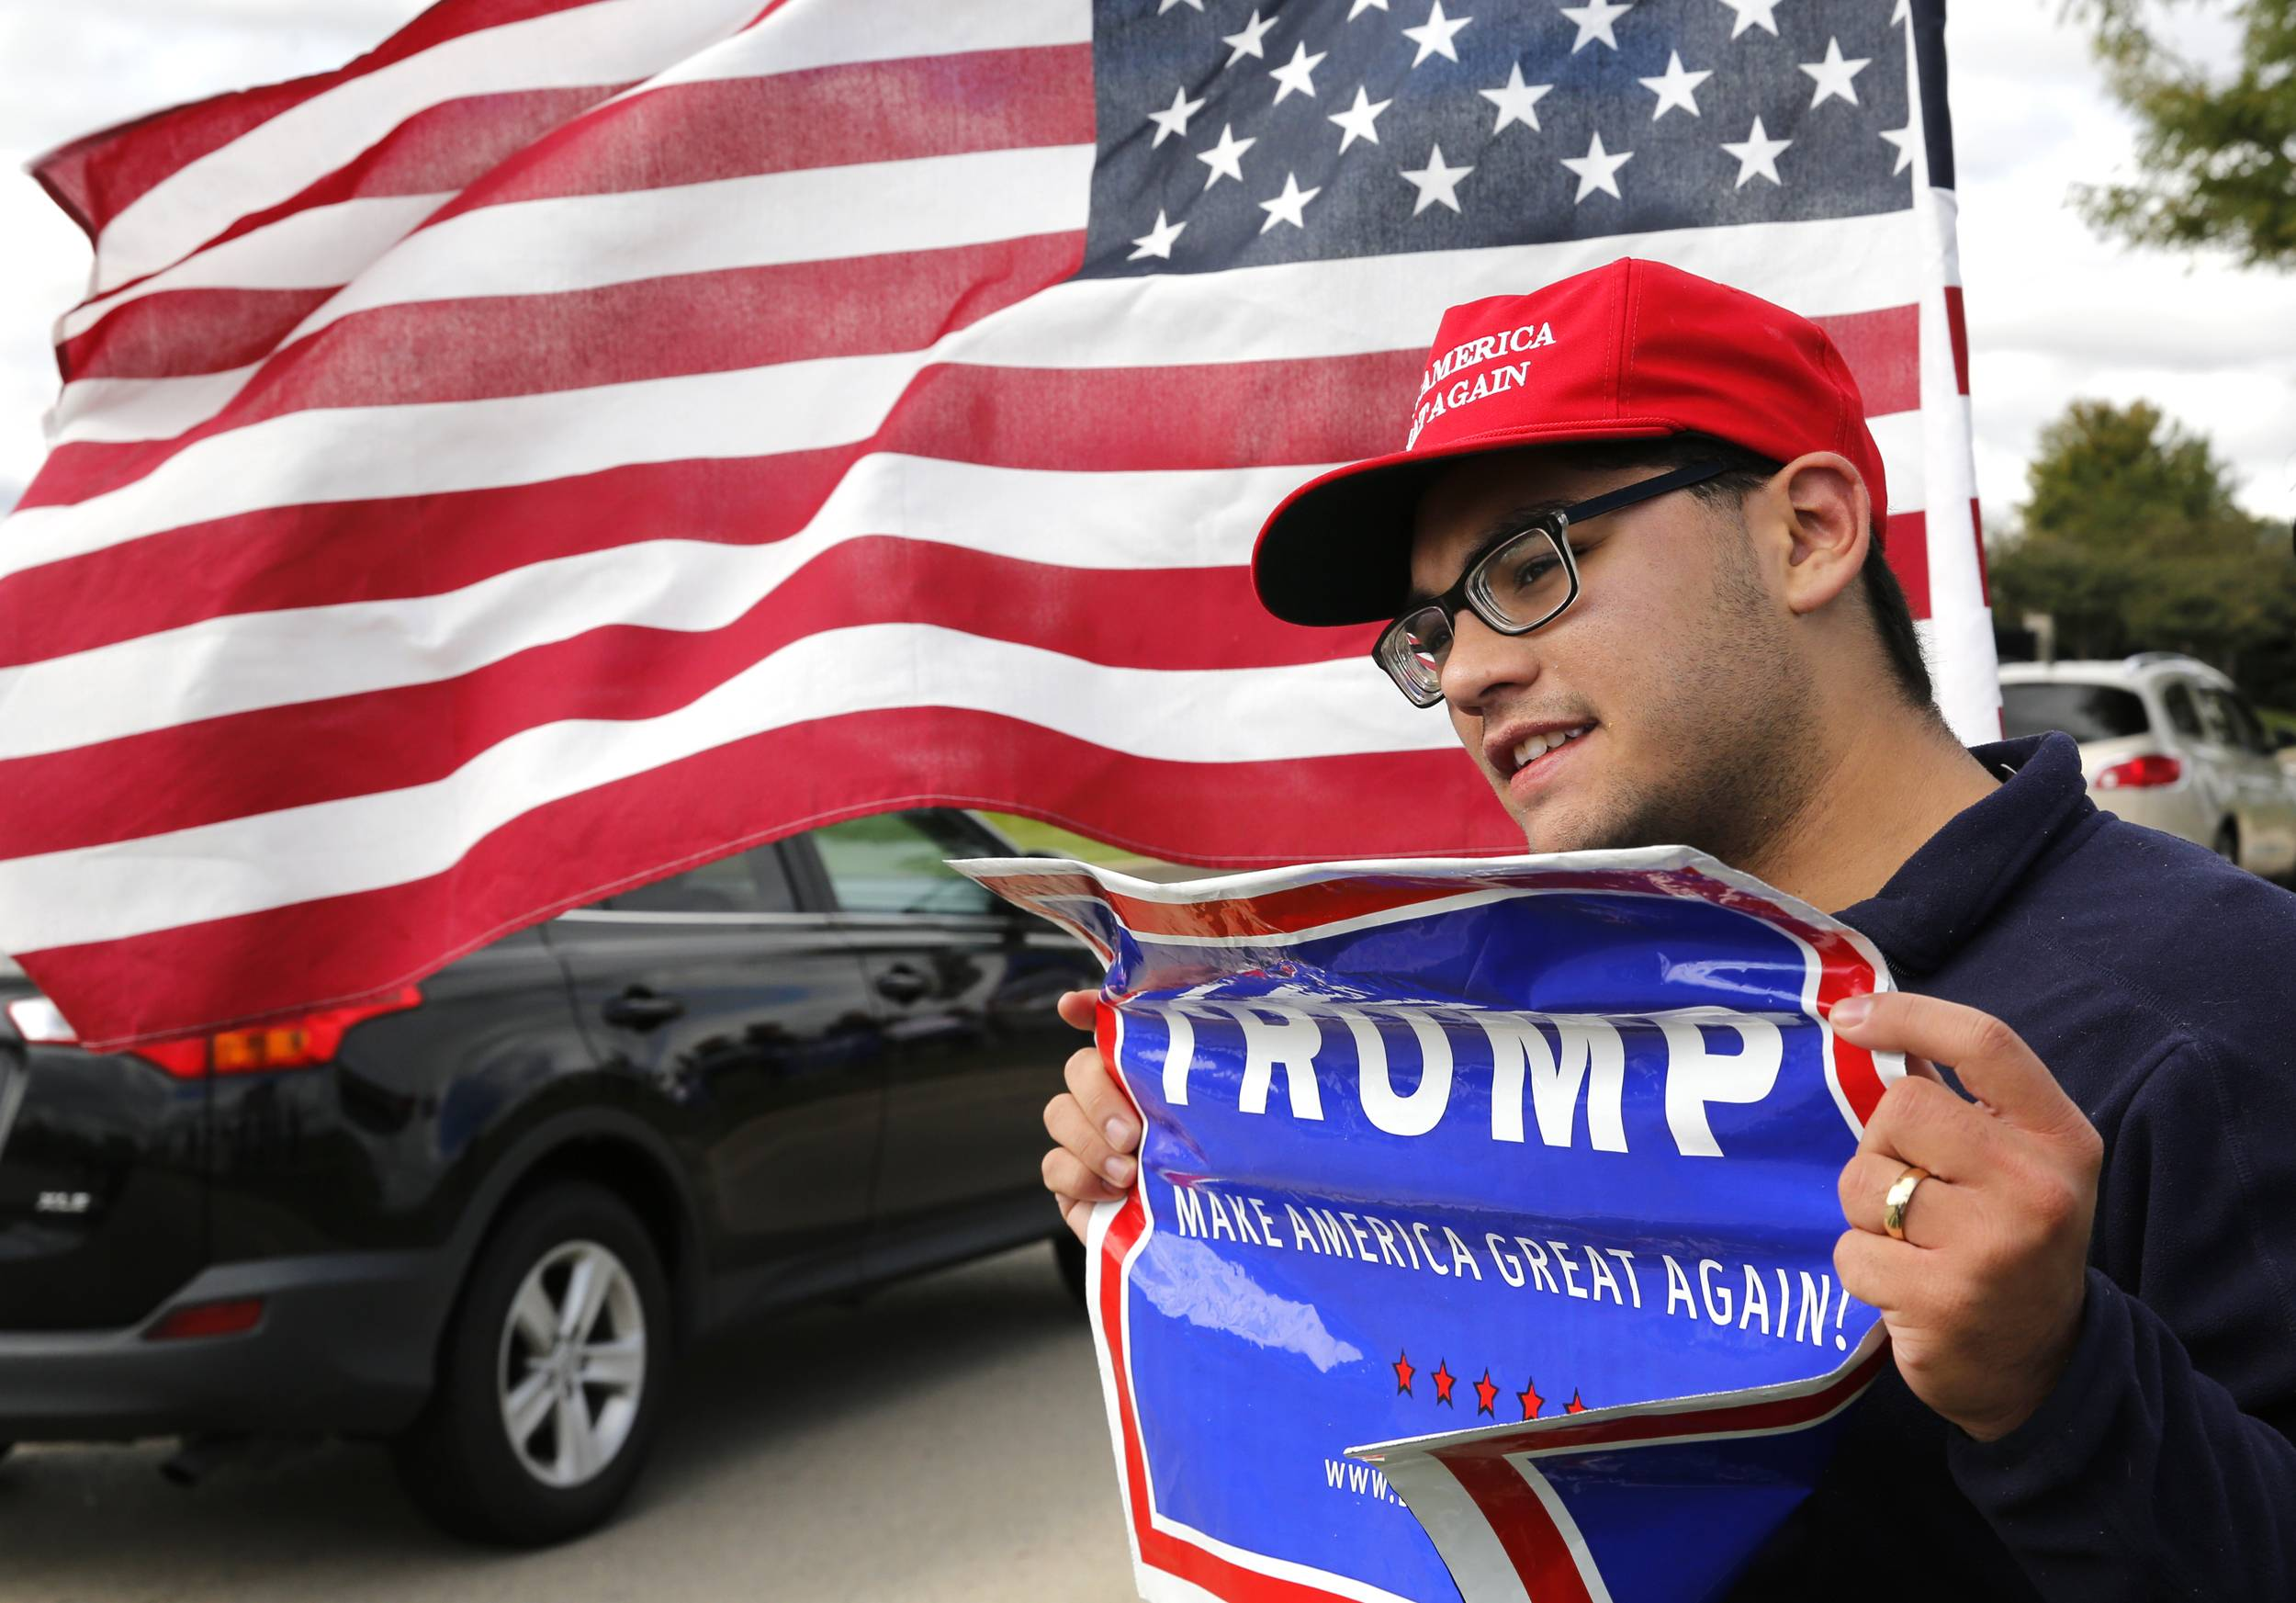 Alexander Rodriguez of Joliet shows his Donald Trump support Wednesday outside the Bolingbrook Golf Club during a fundraiser for the Republican candidate.